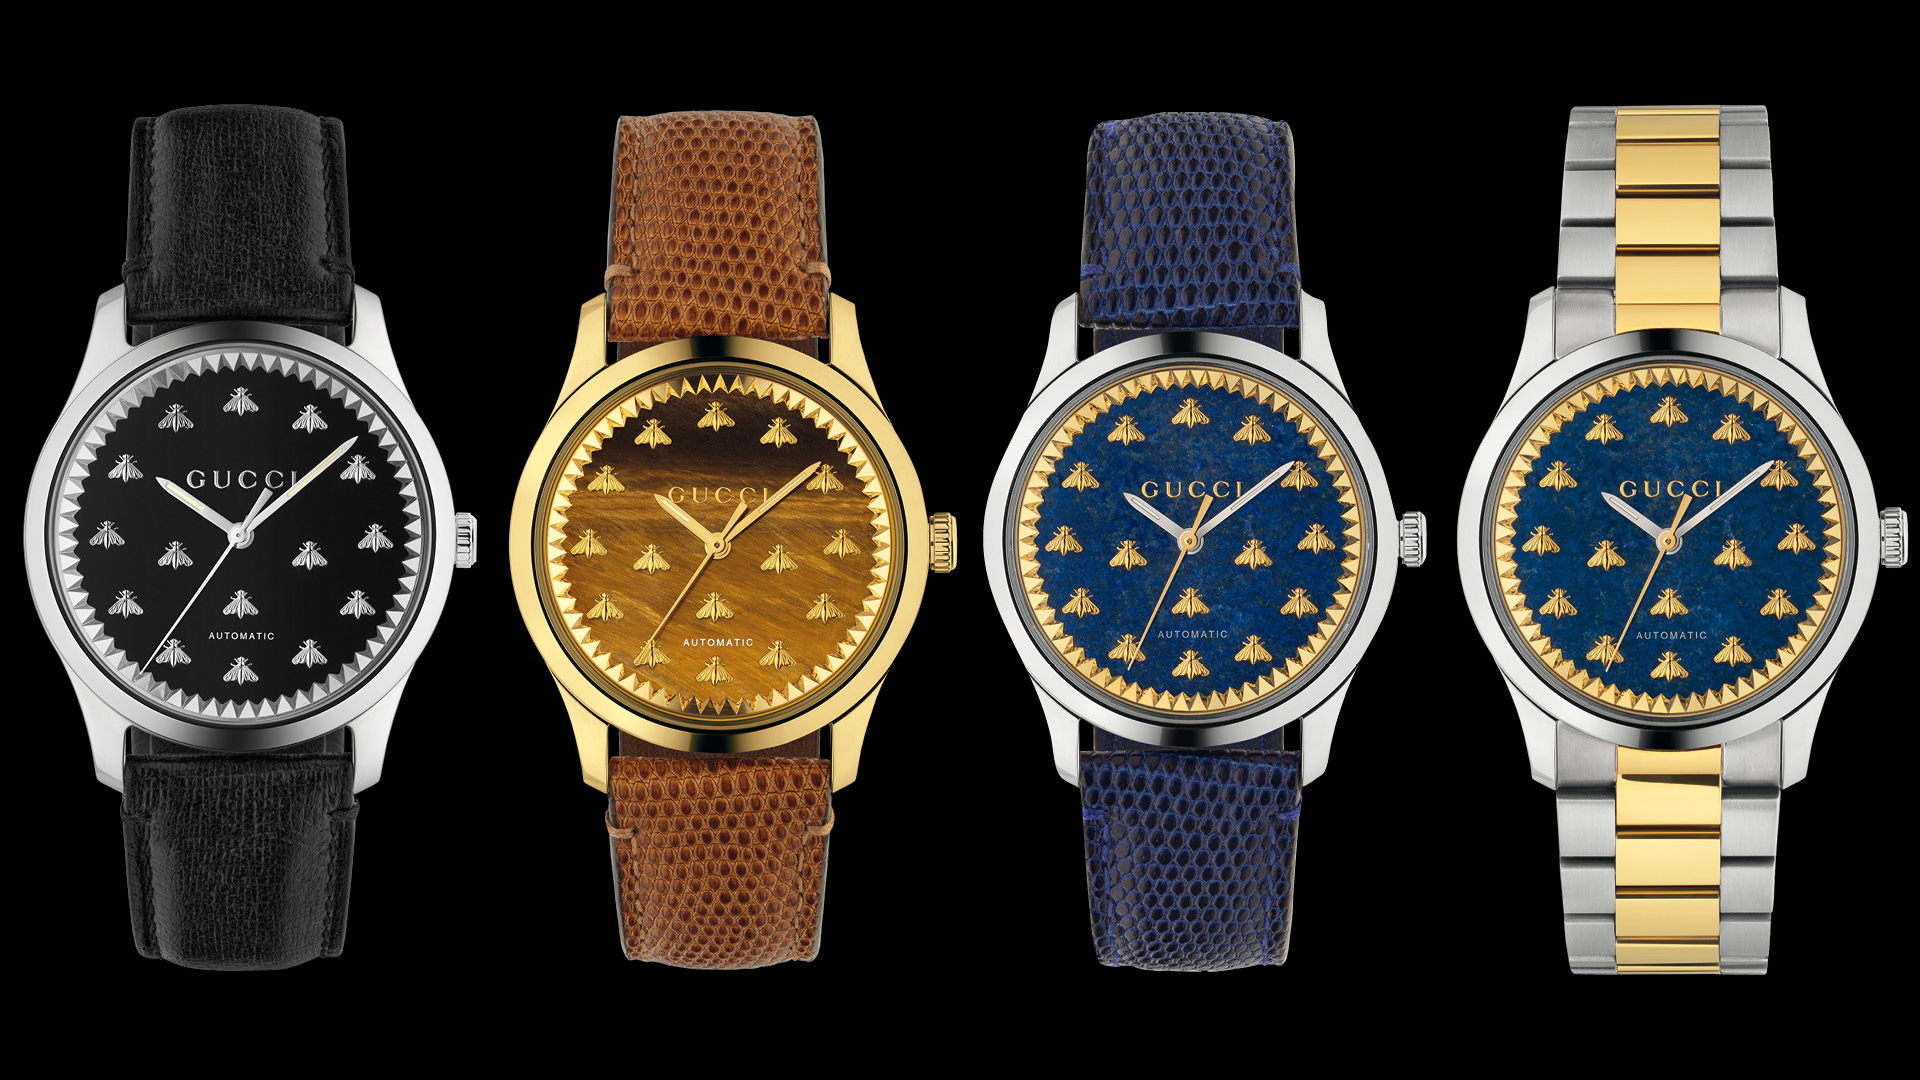 Gucci G-Timeless Automatic models